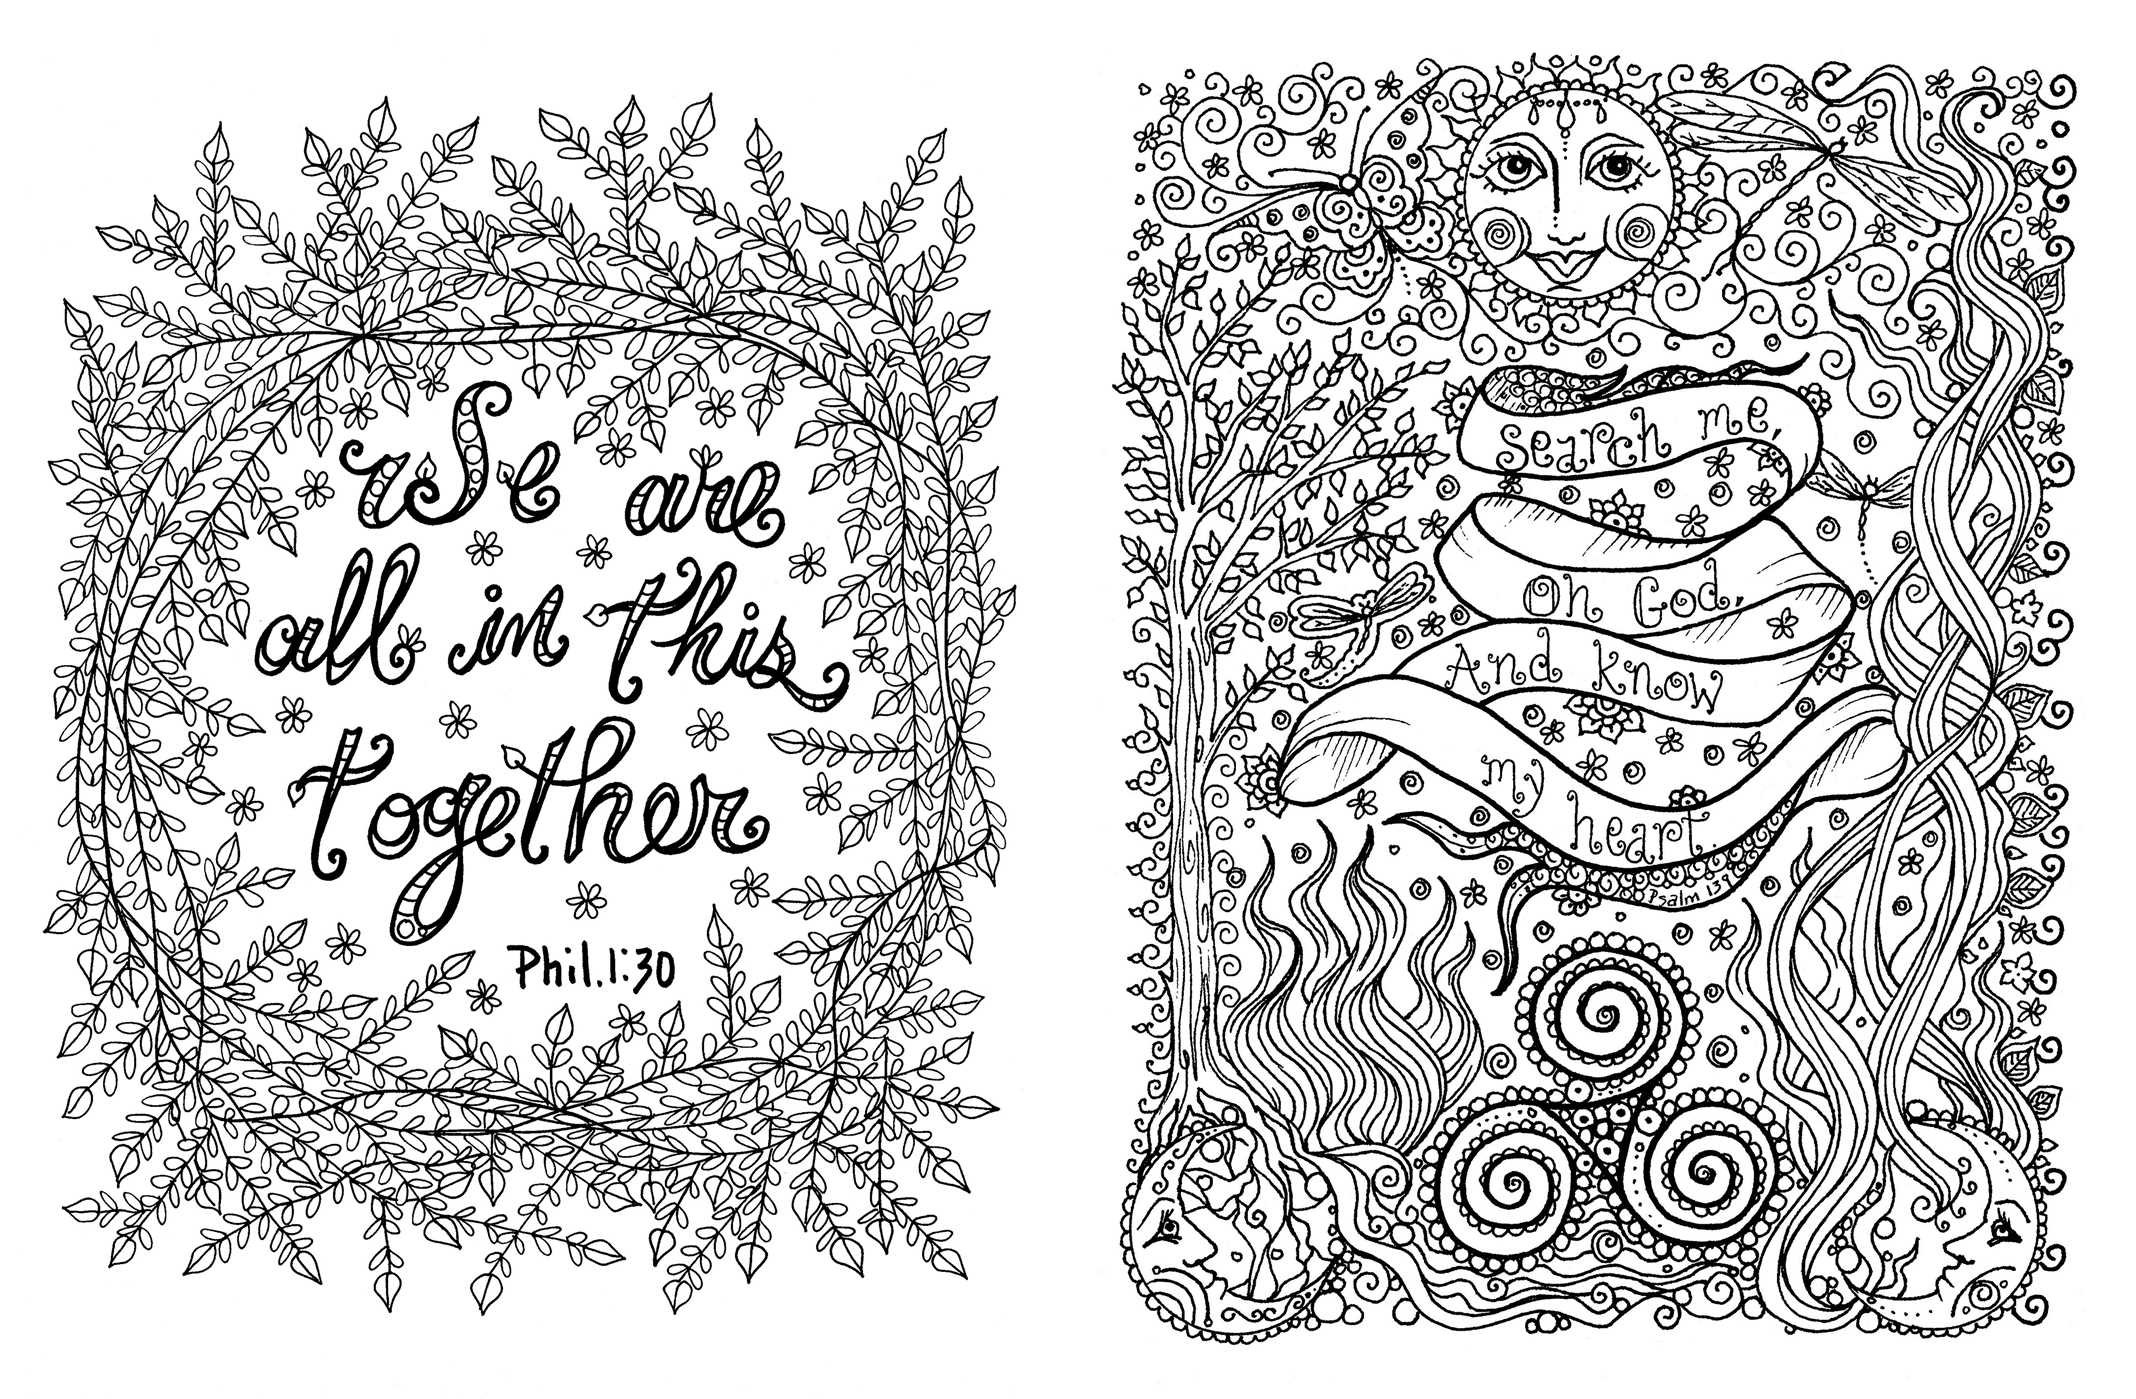 Amazon.com: Posh Adult Coloring Book: Prayers for Inspiration ...